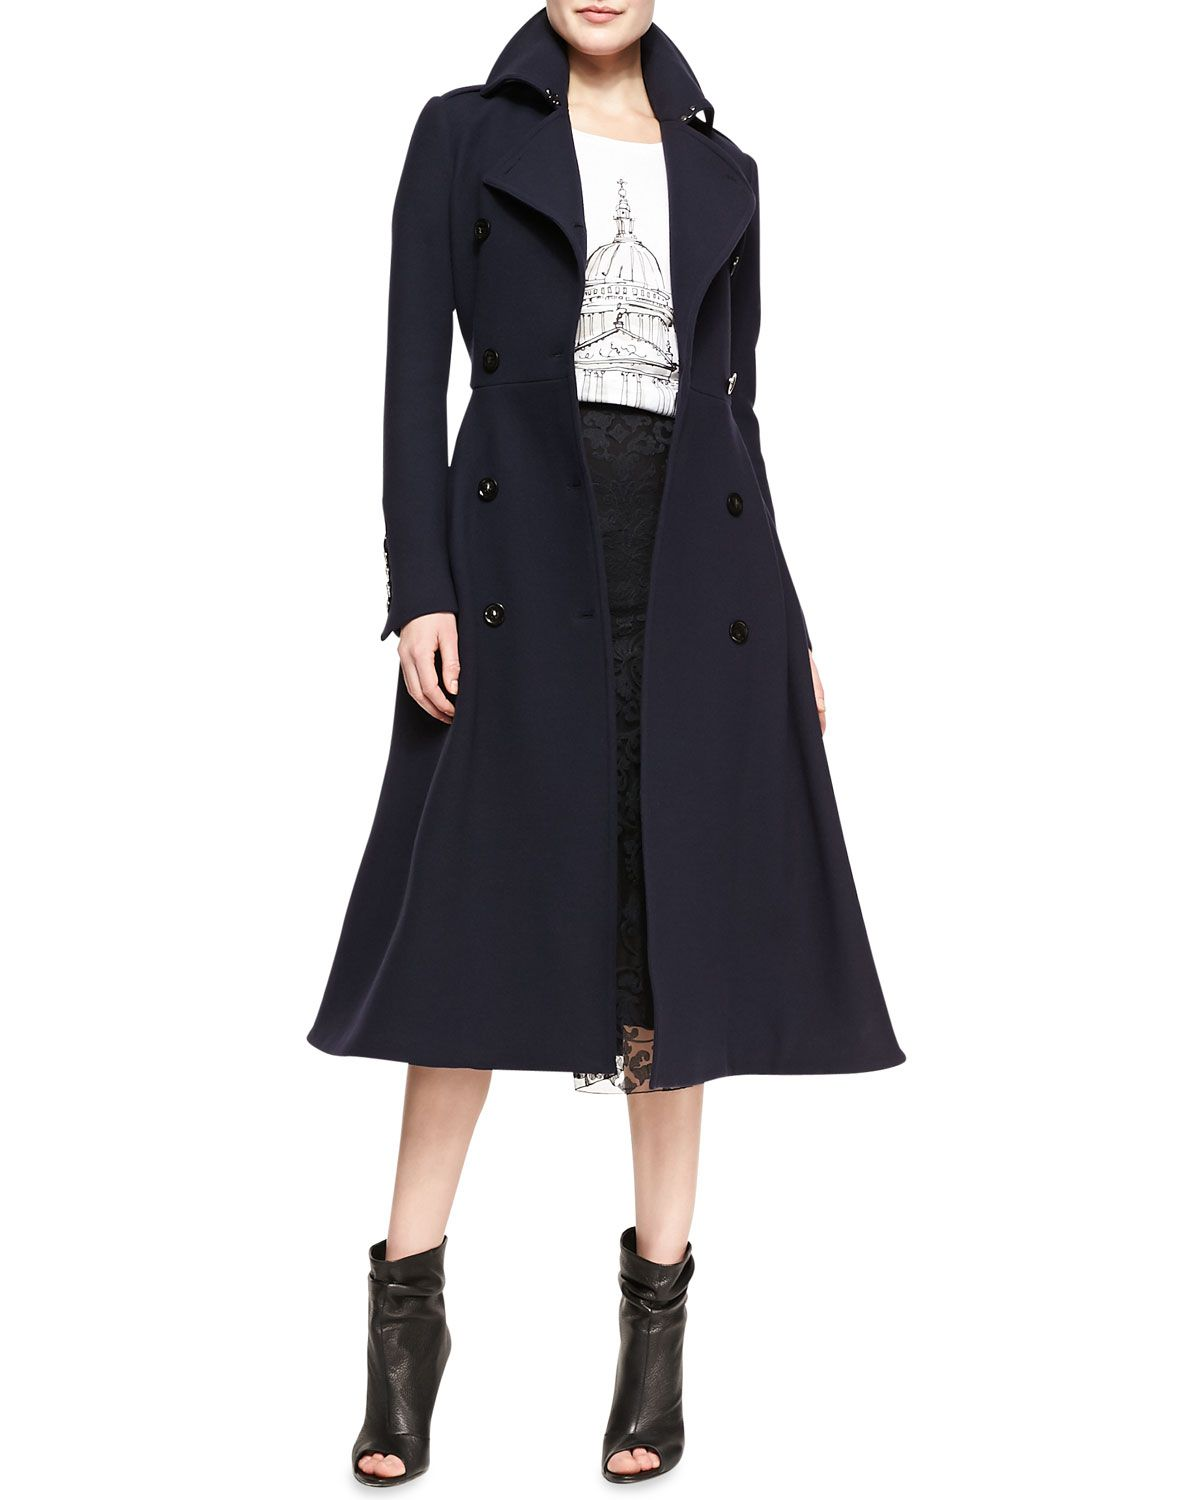 60db9a5cde Burberry Prorsum Double-Breasted A-Line Midi Coat, St Paul's Cathedral  Printed Jersey T-Shirt & Fluted Lace Midi Skirt